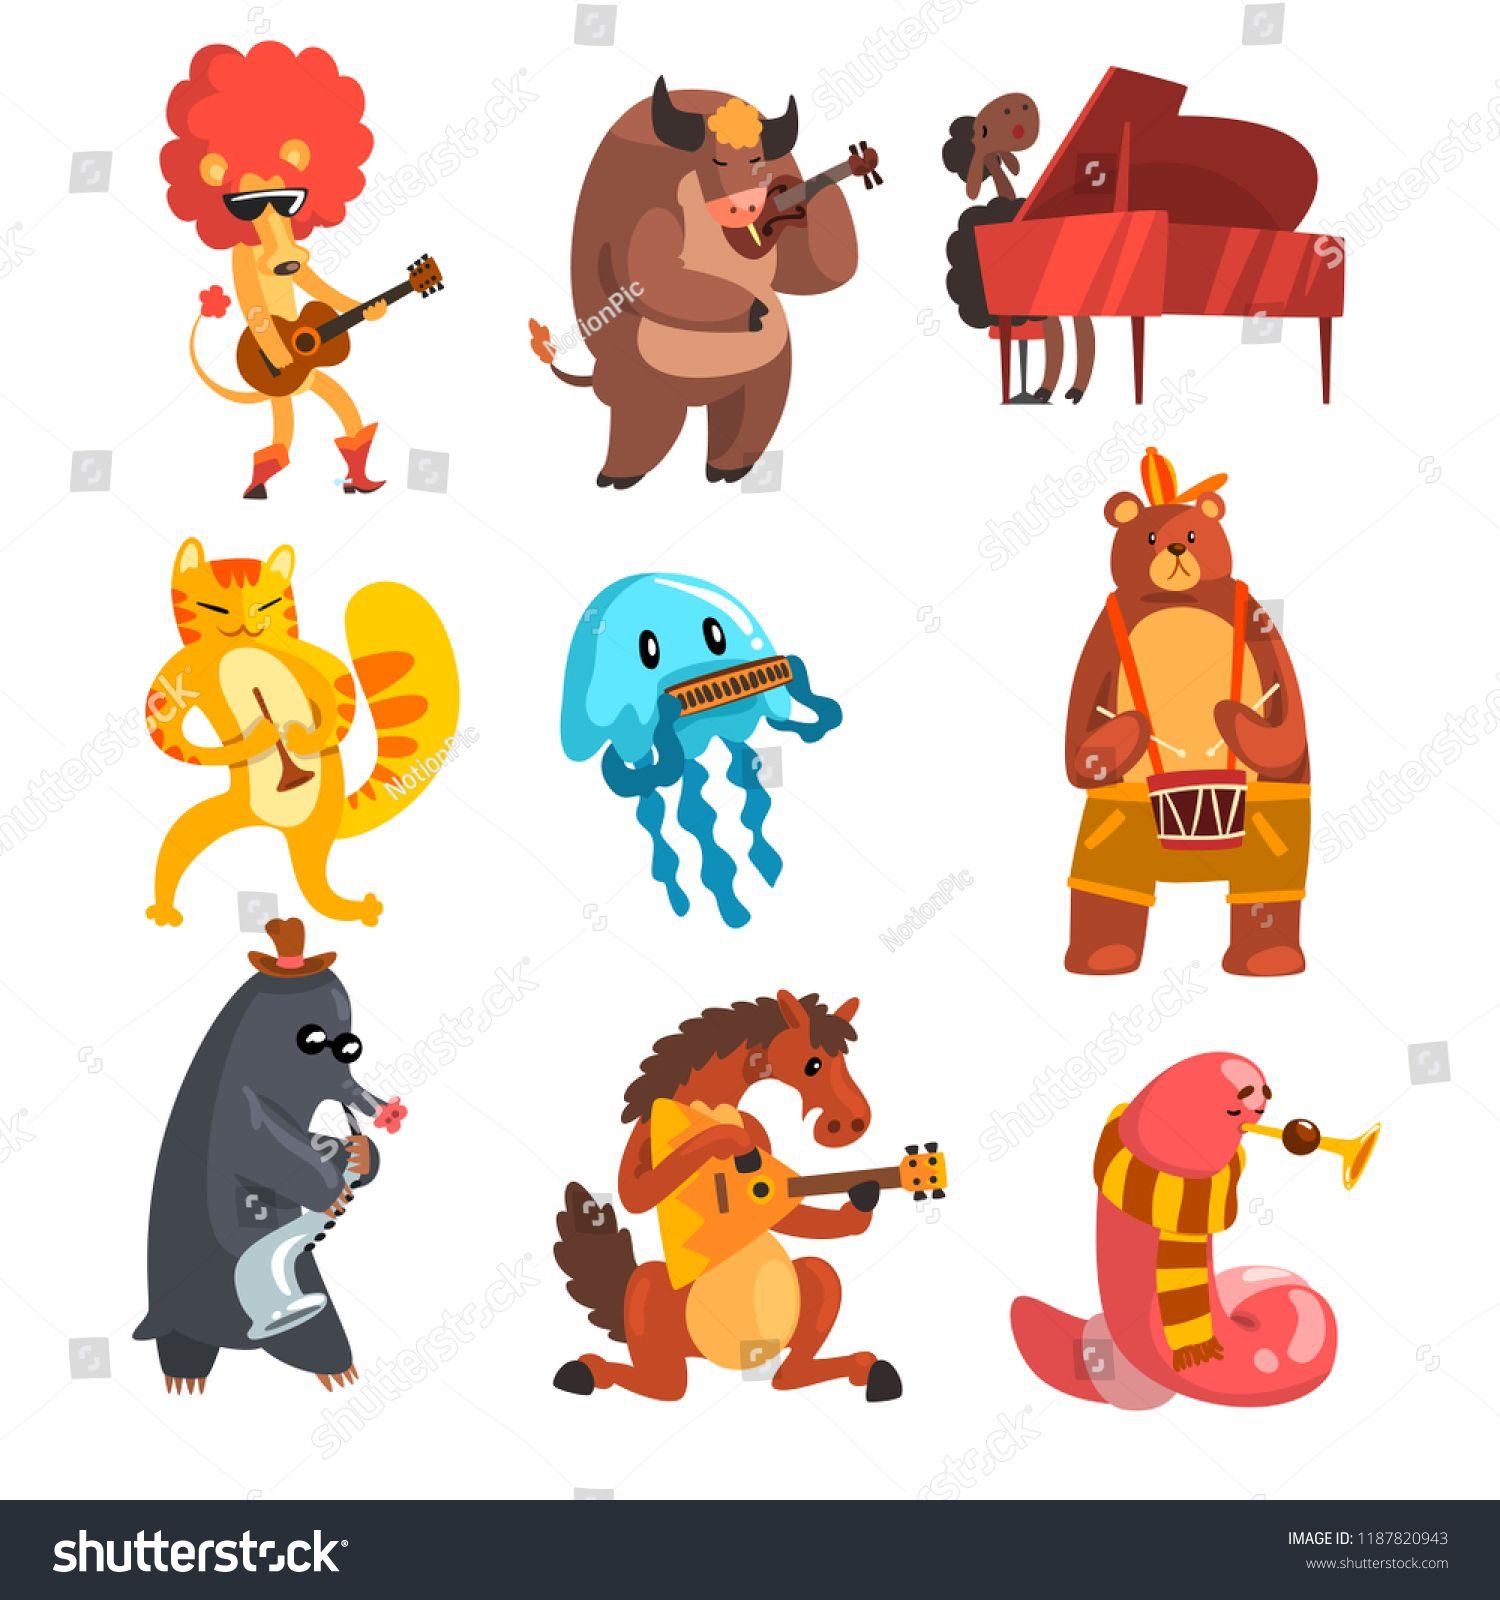 Animals Playing Musical Instruments Set Lion Cow Sheep Jellyfish Cat Mole Horse Earthworm Bear Musical Instrument Set Music Illustration Music Cartoon